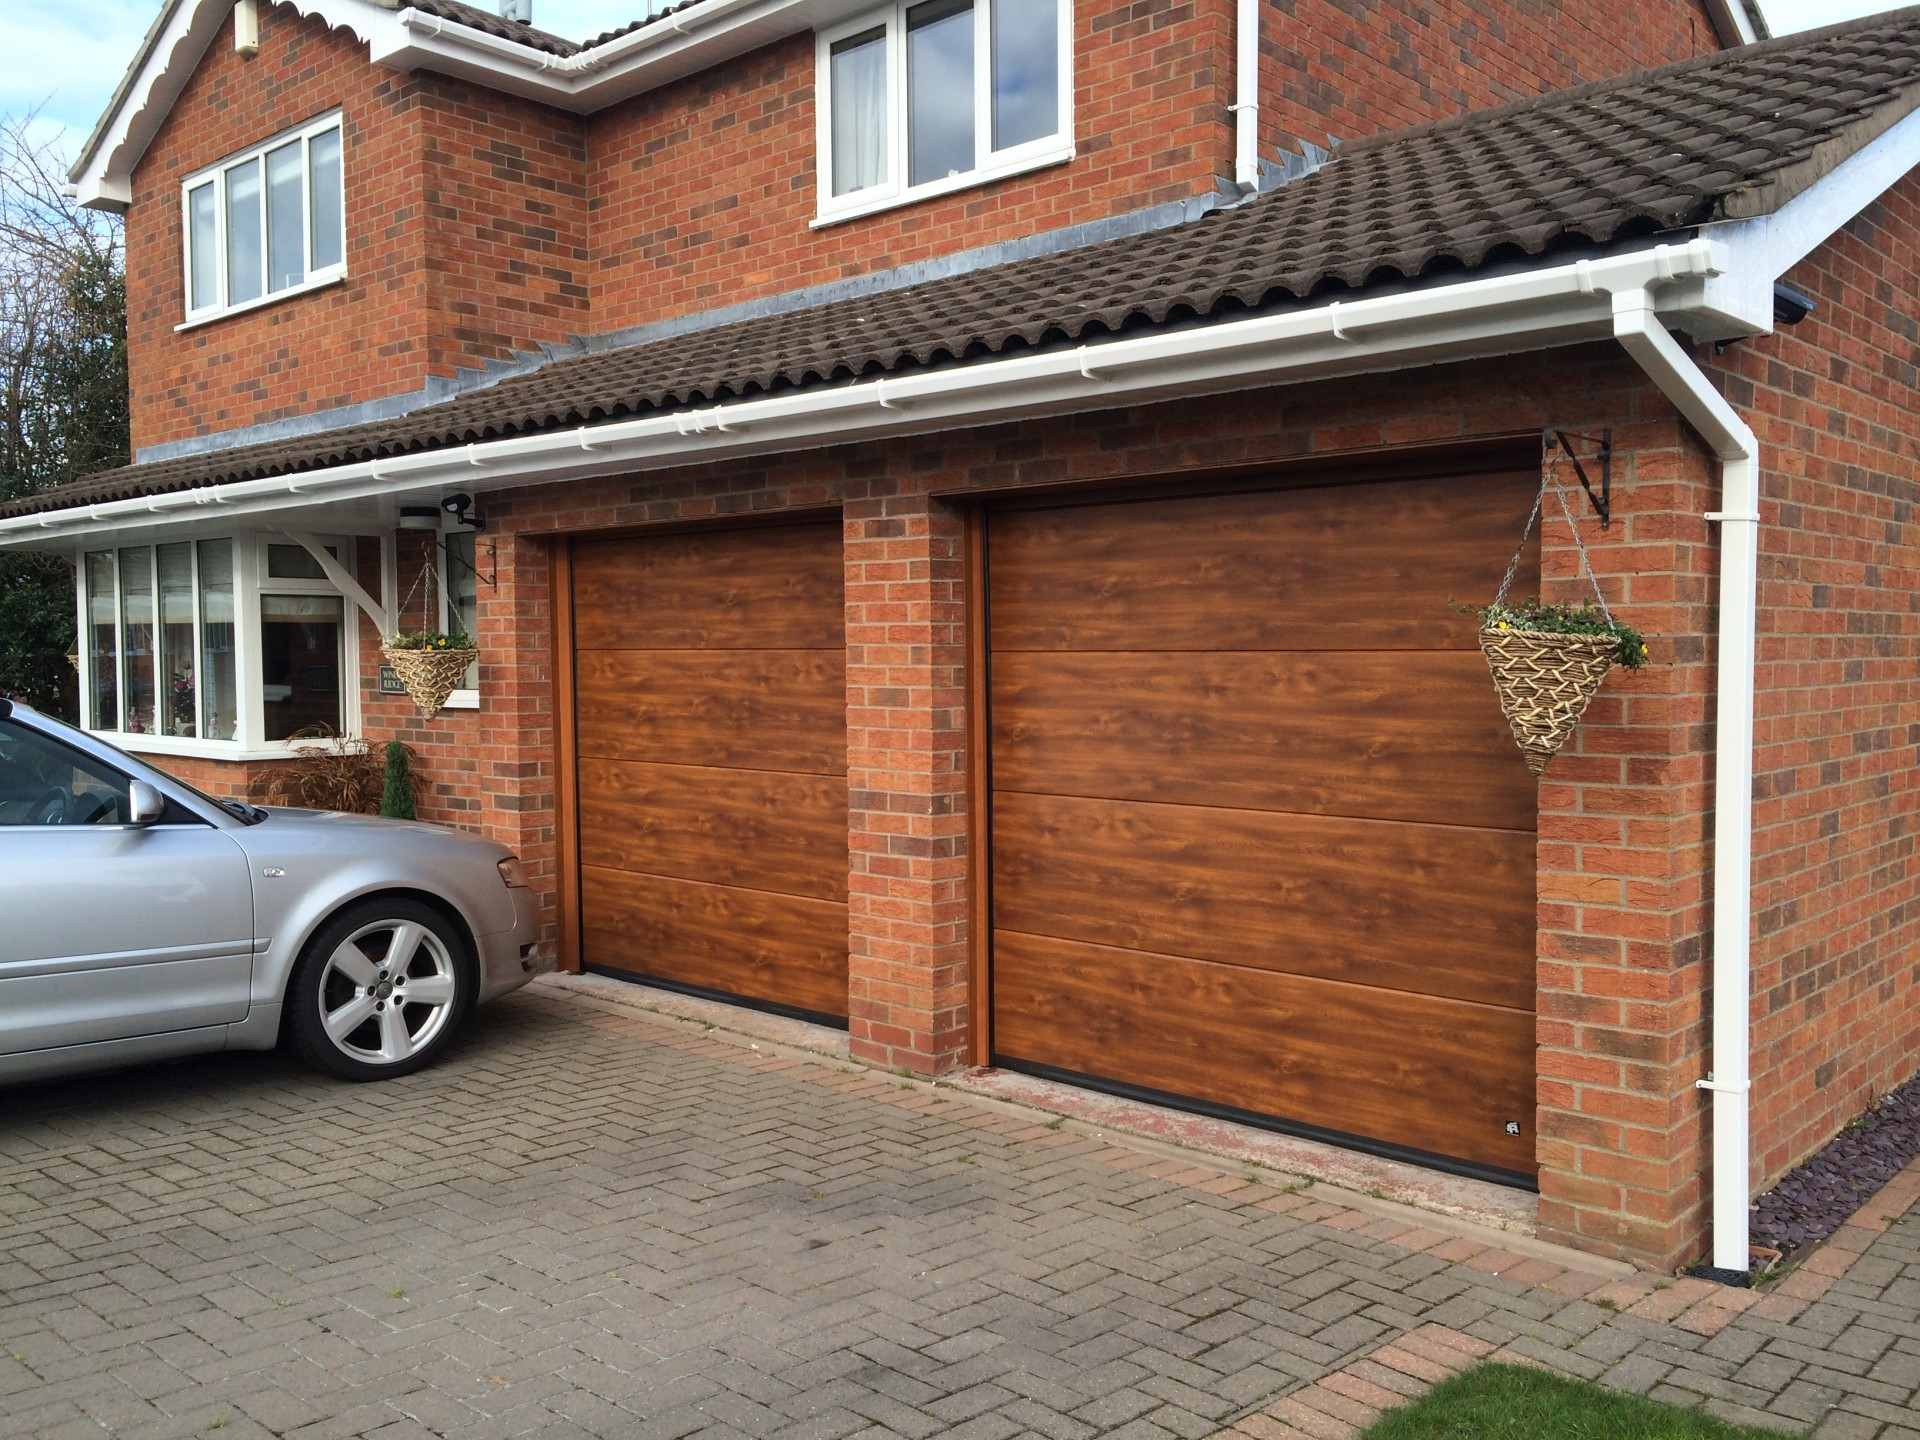 Wood Sectional Garage Doors : Adding warmth to your home